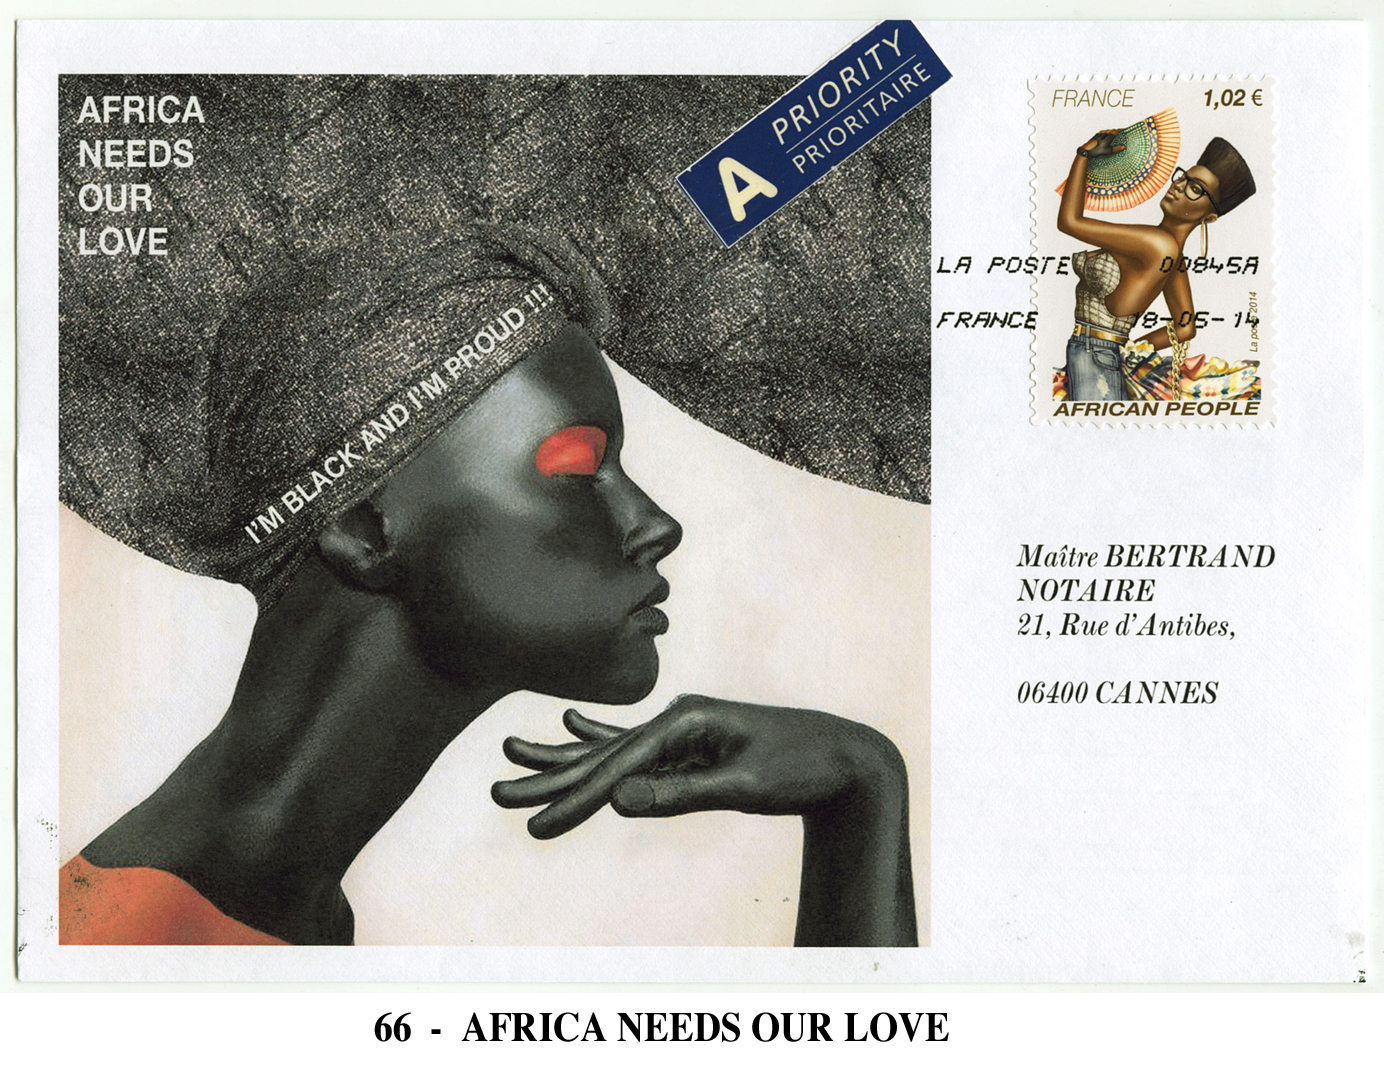 66 - AFRICA NEEDS OUR LOVE.jpg